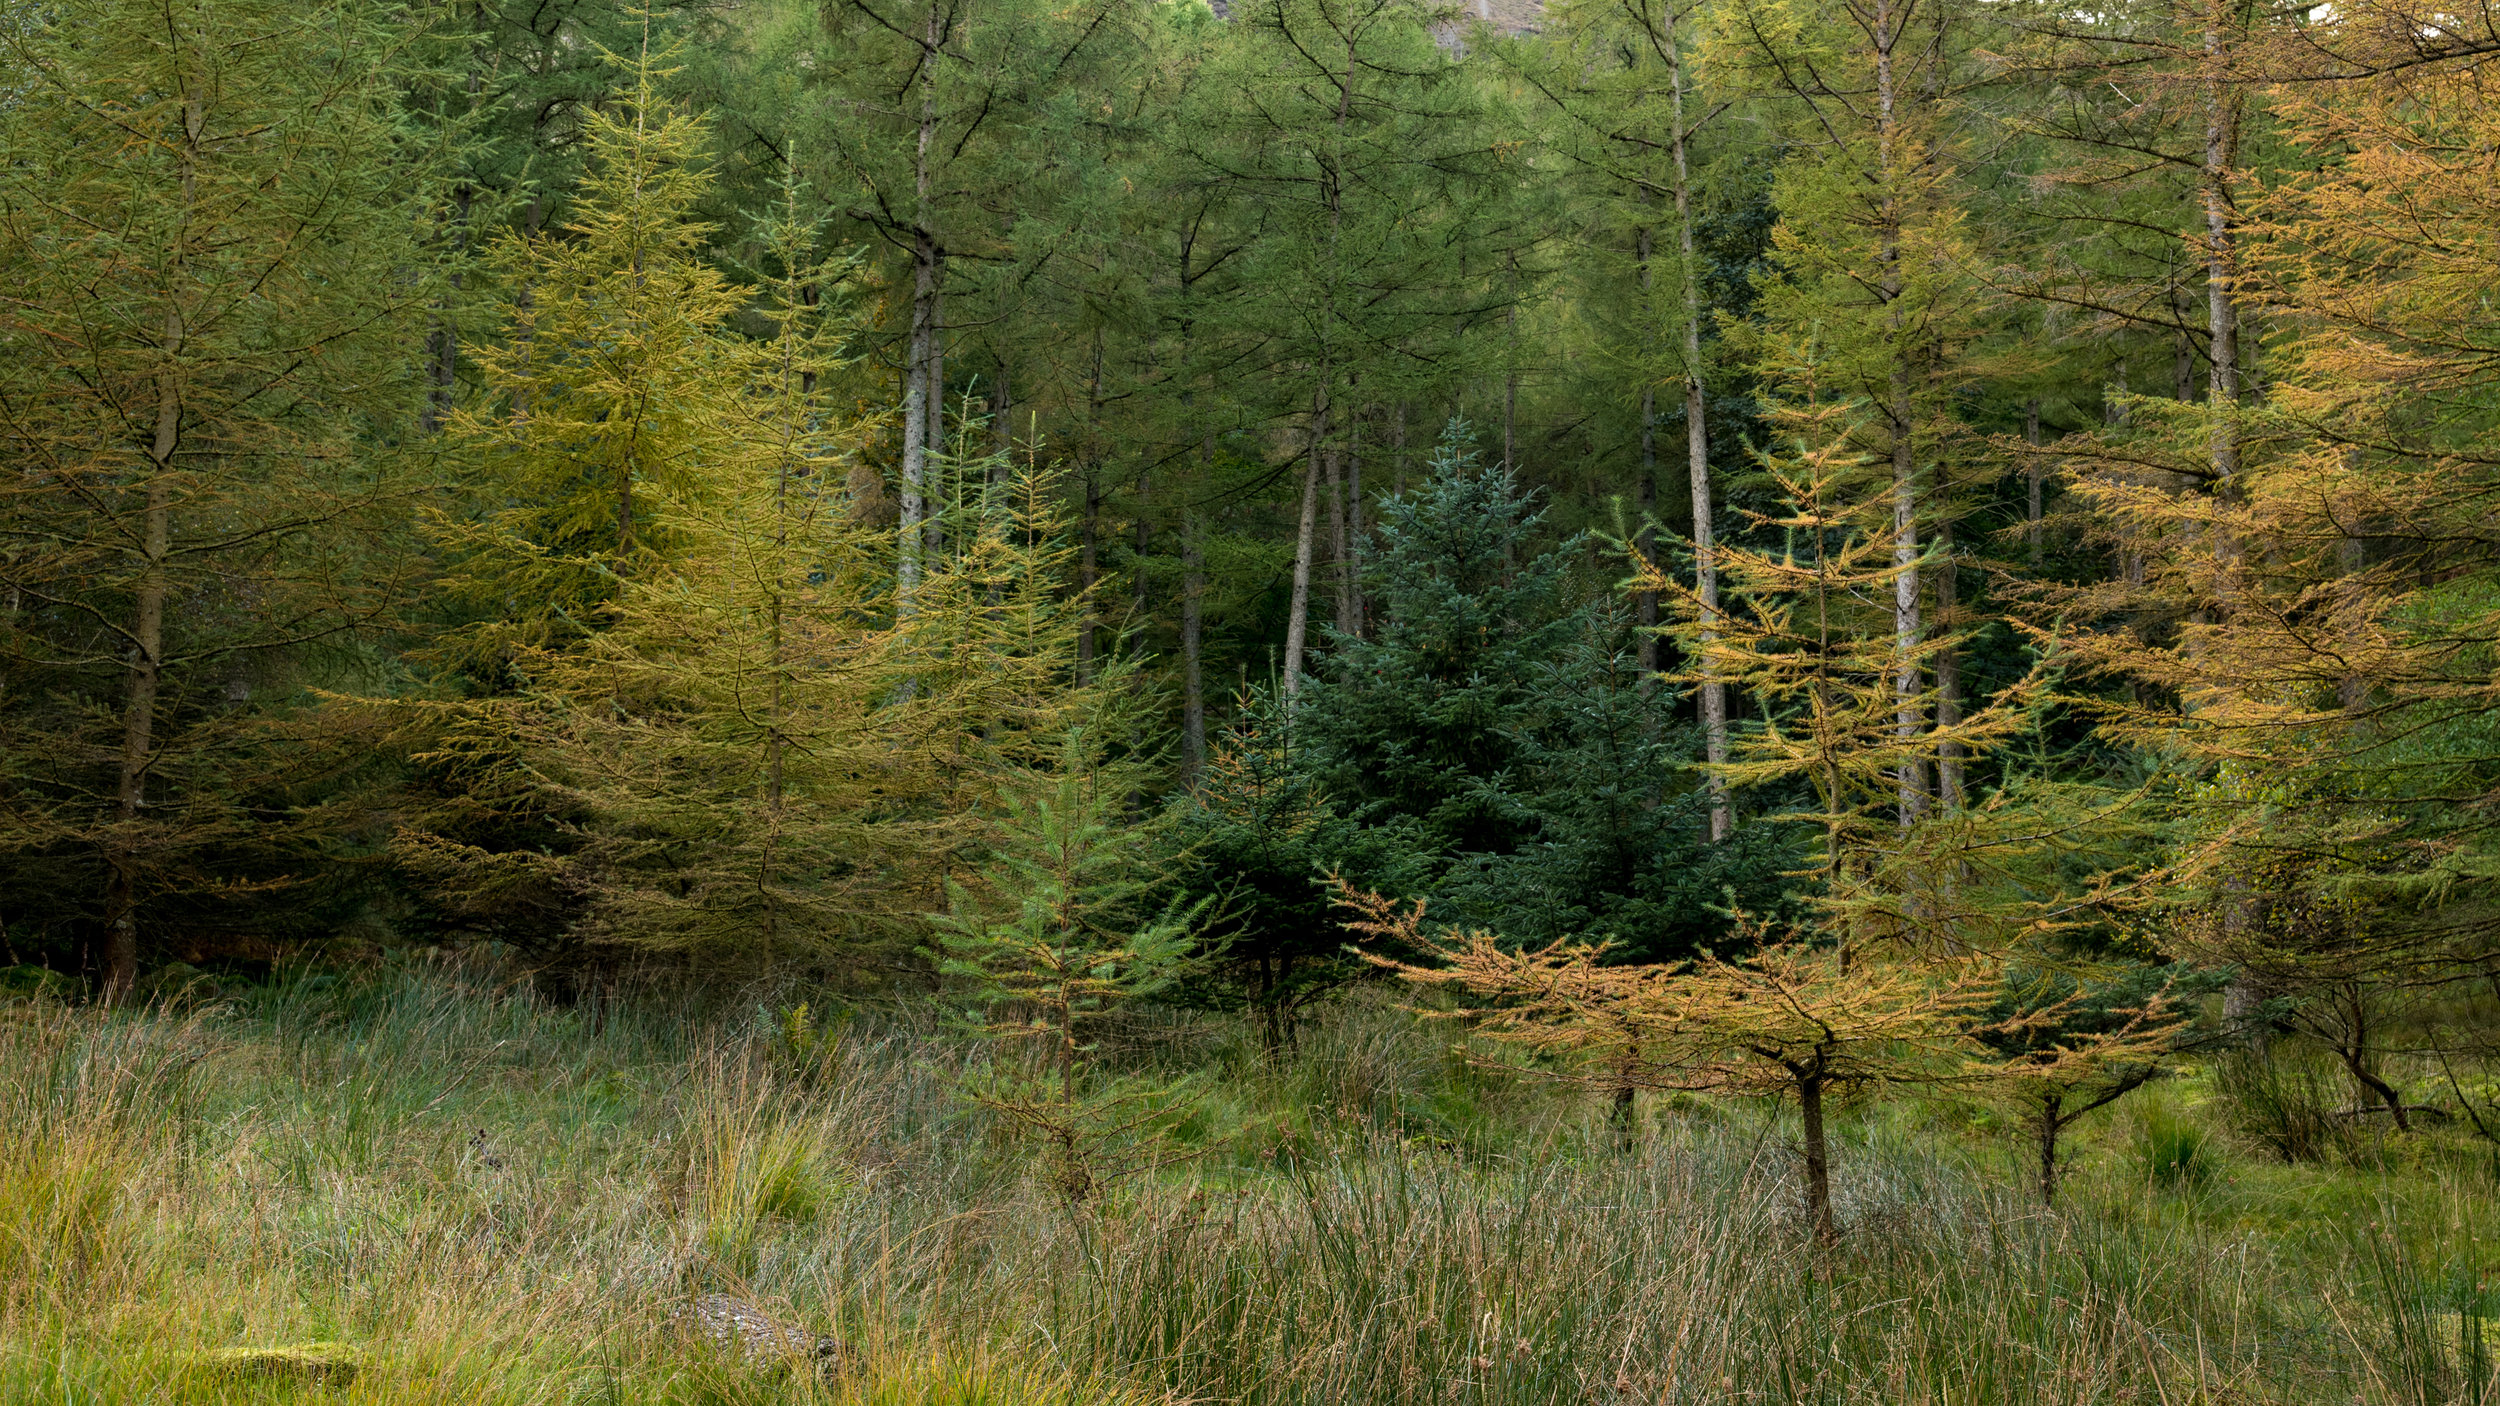 Pine trees starting to yellow on the banks of Lake Buttermere